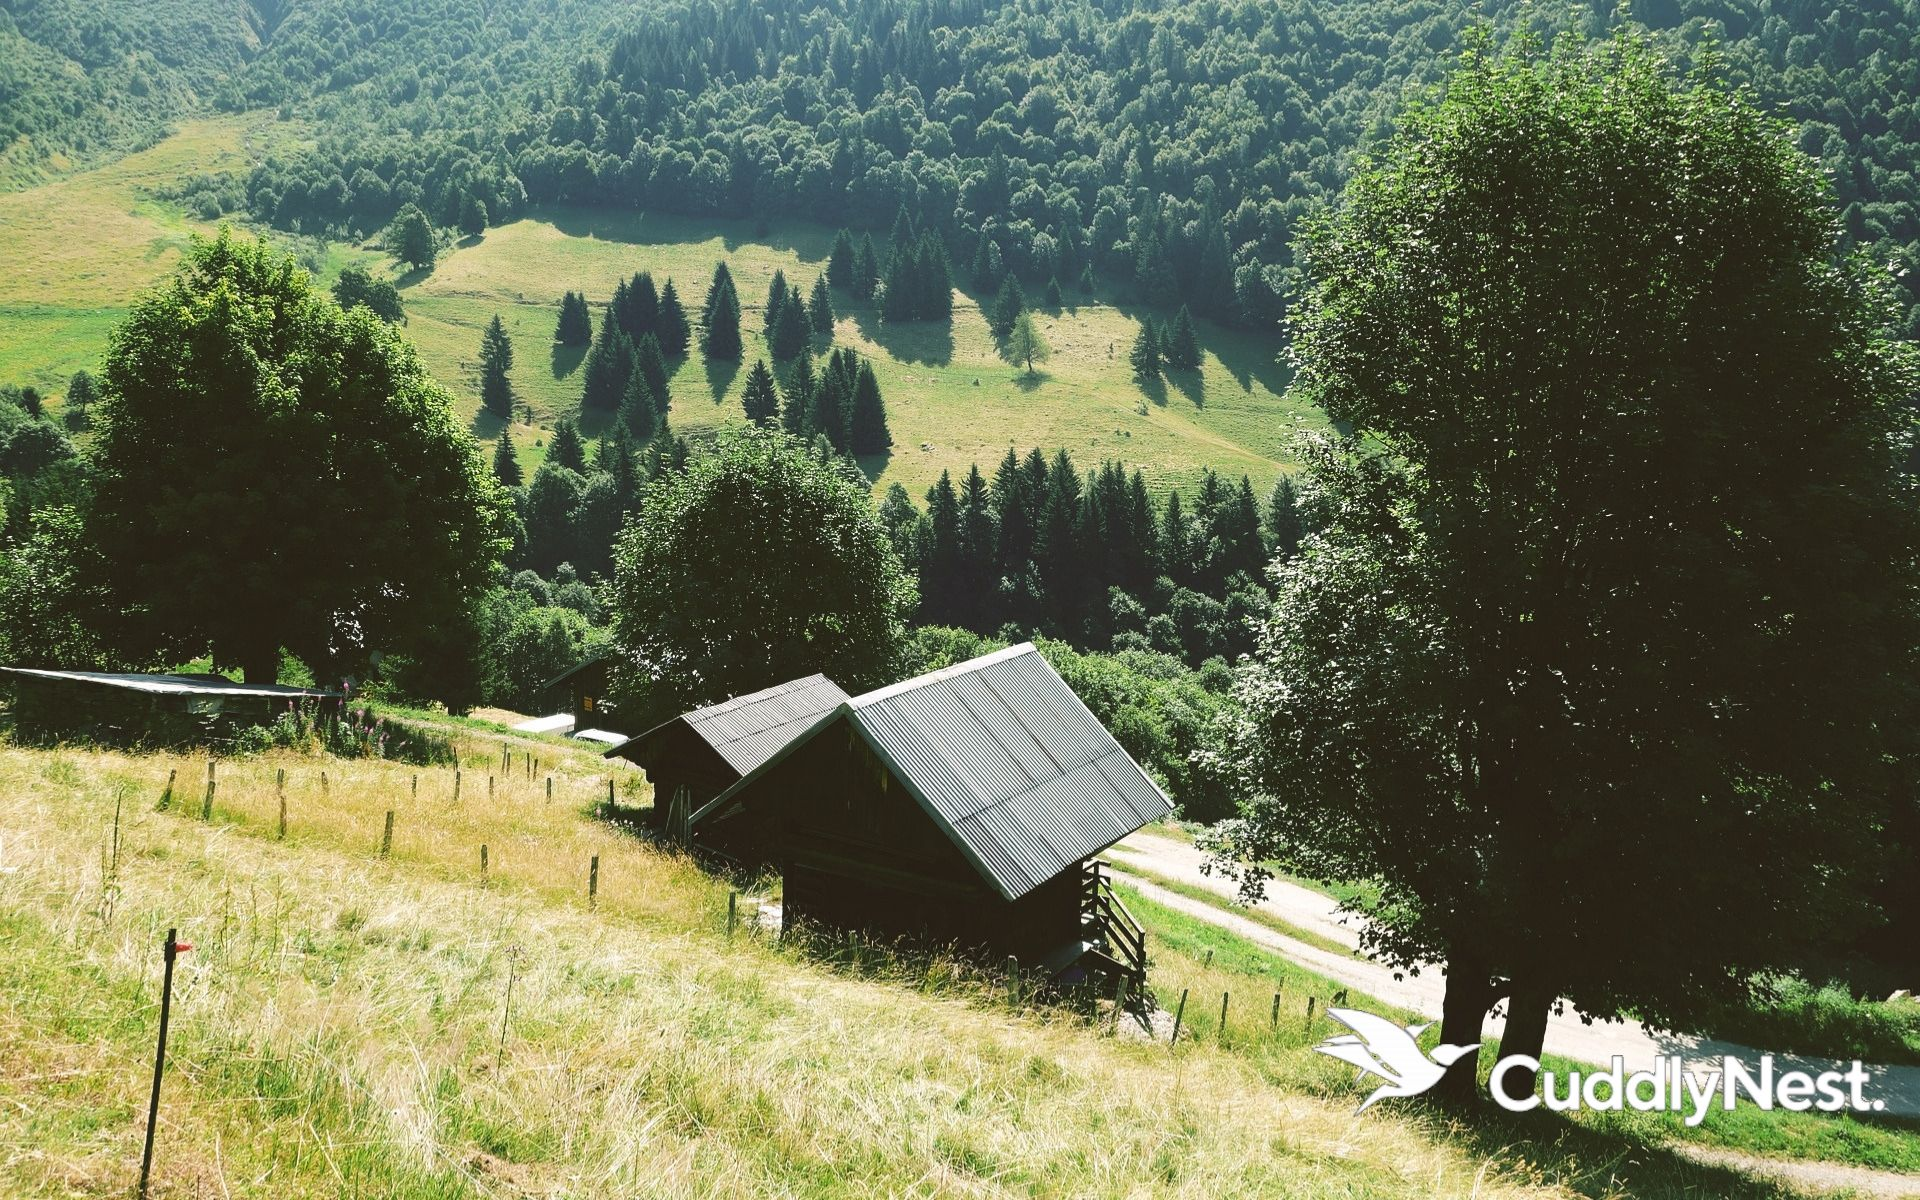 Tour de France Cuddlynest Travel Tips Guides French Alps July 2019